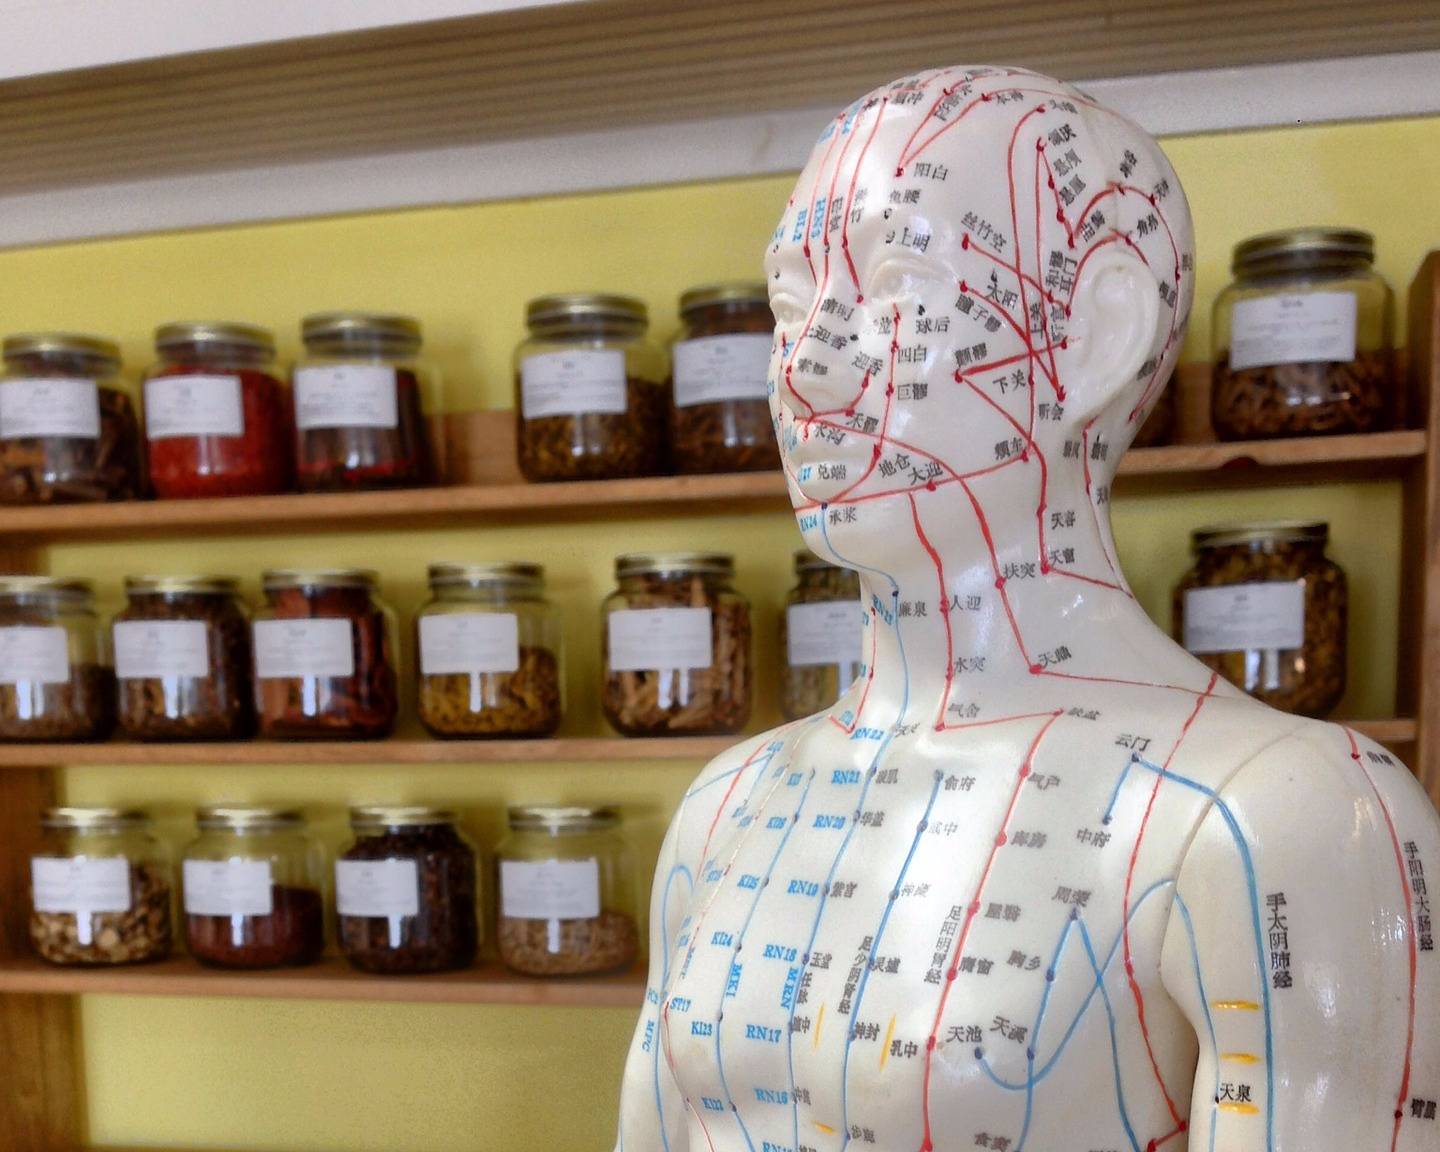 acupuncture + Herbs.jpg